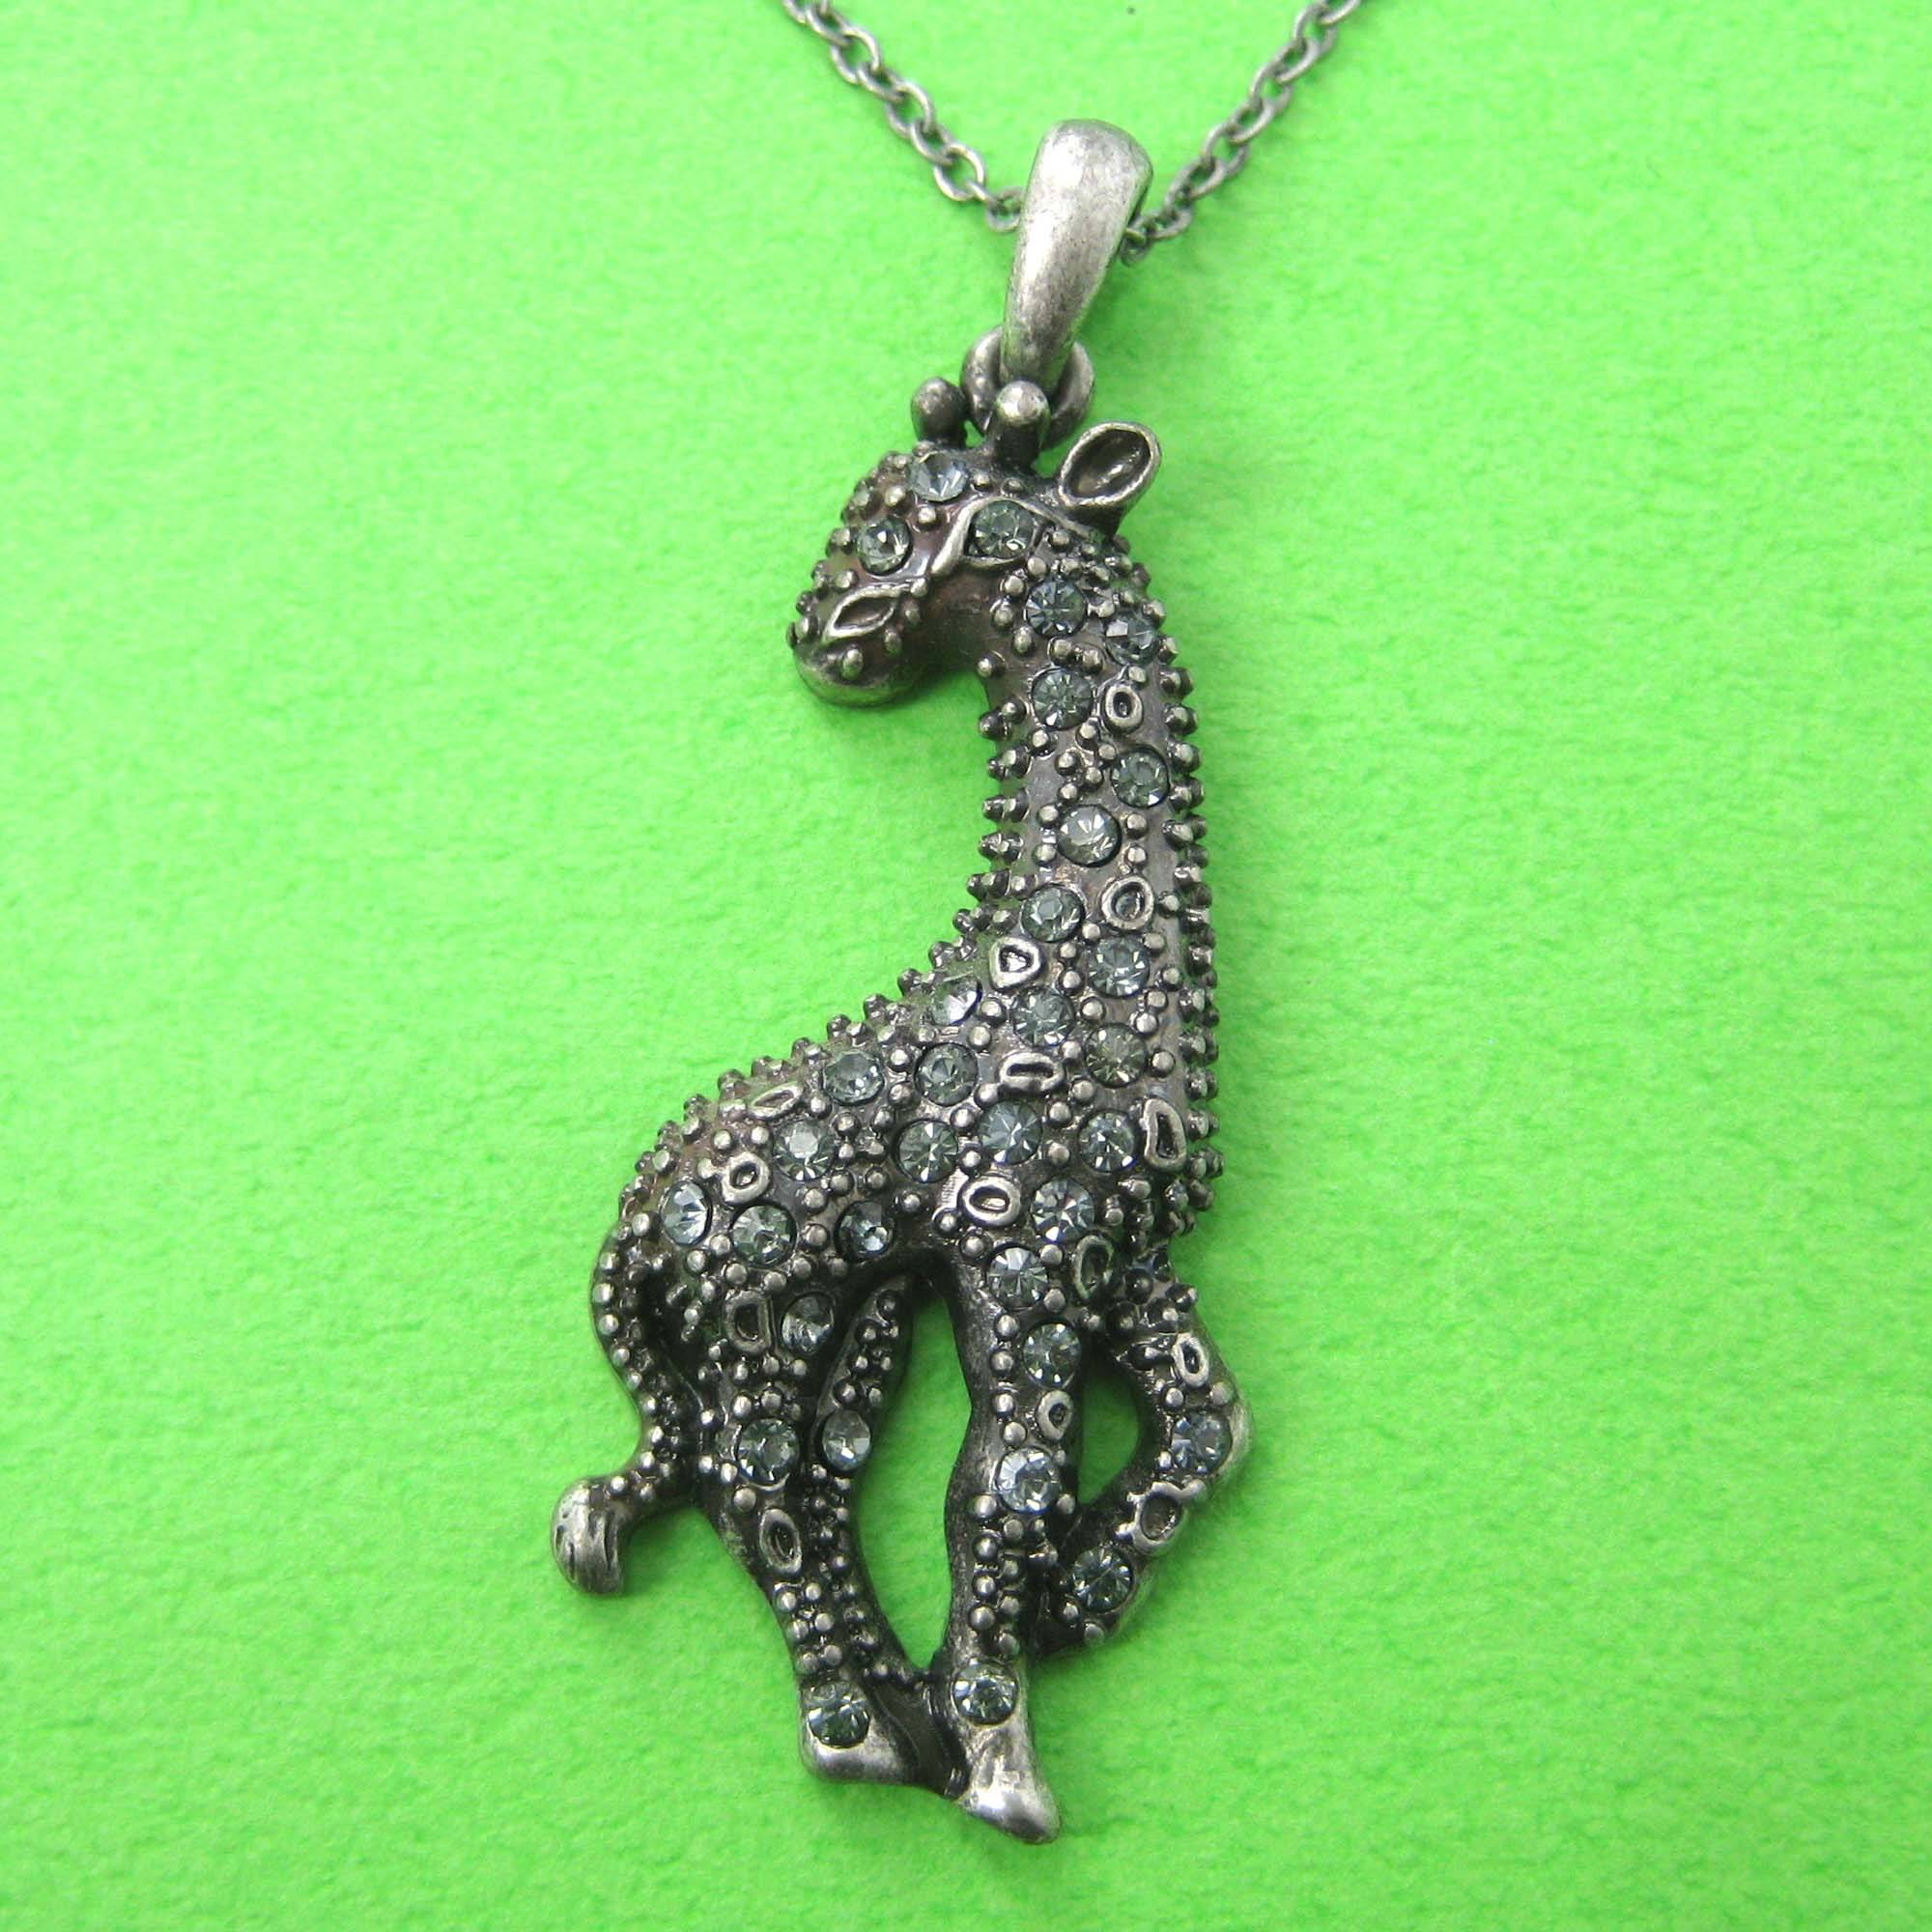 giraffe-shaped-animal-pendant-necklace-in-silver-with-rhinestones-dotoly